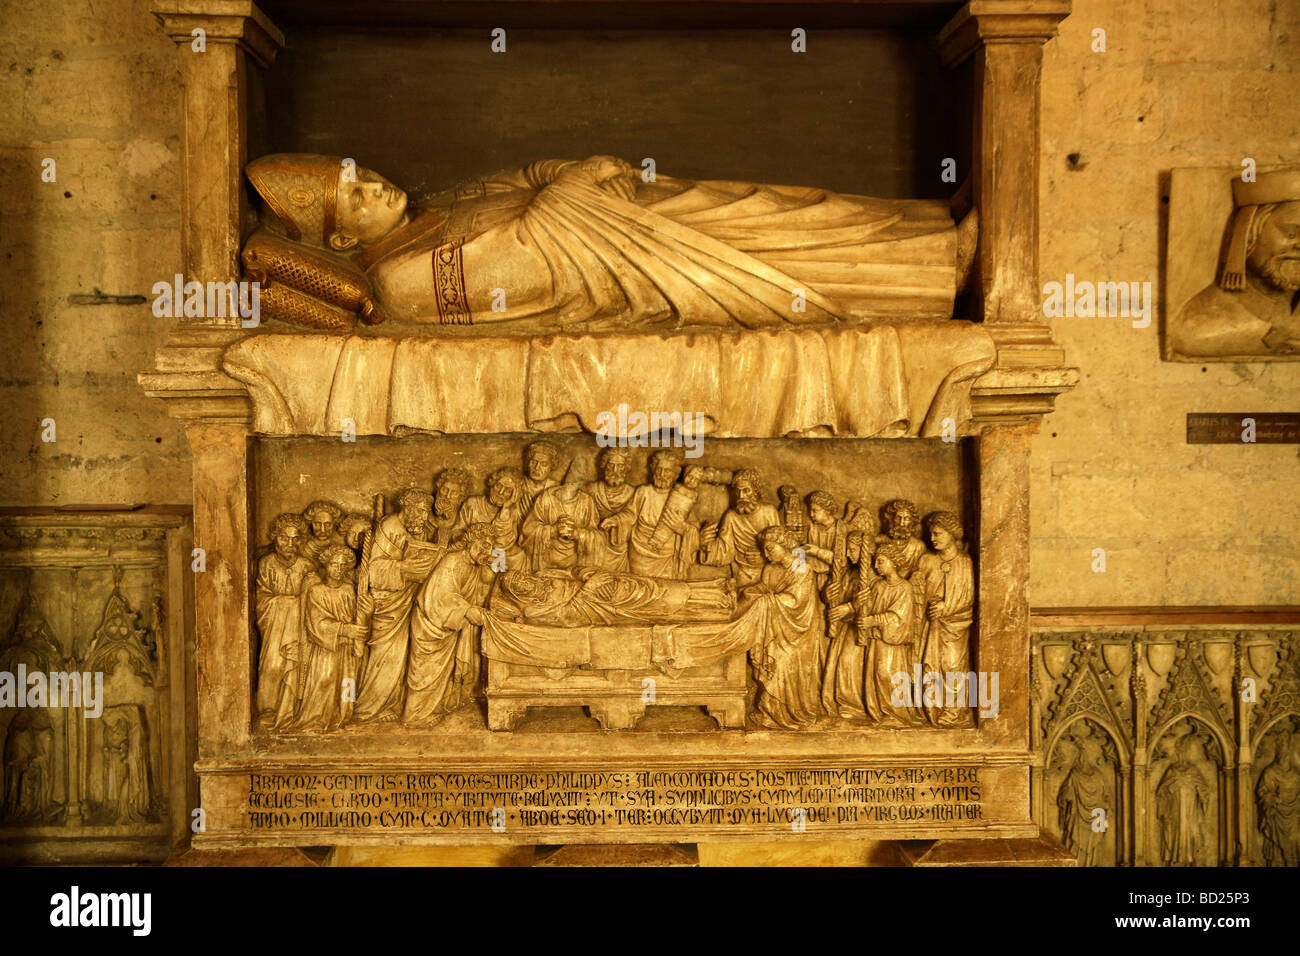 Gravestone in the Palais des Papes, Pope's Palace, in Avignon, Provence, France, Europe - Stock Image